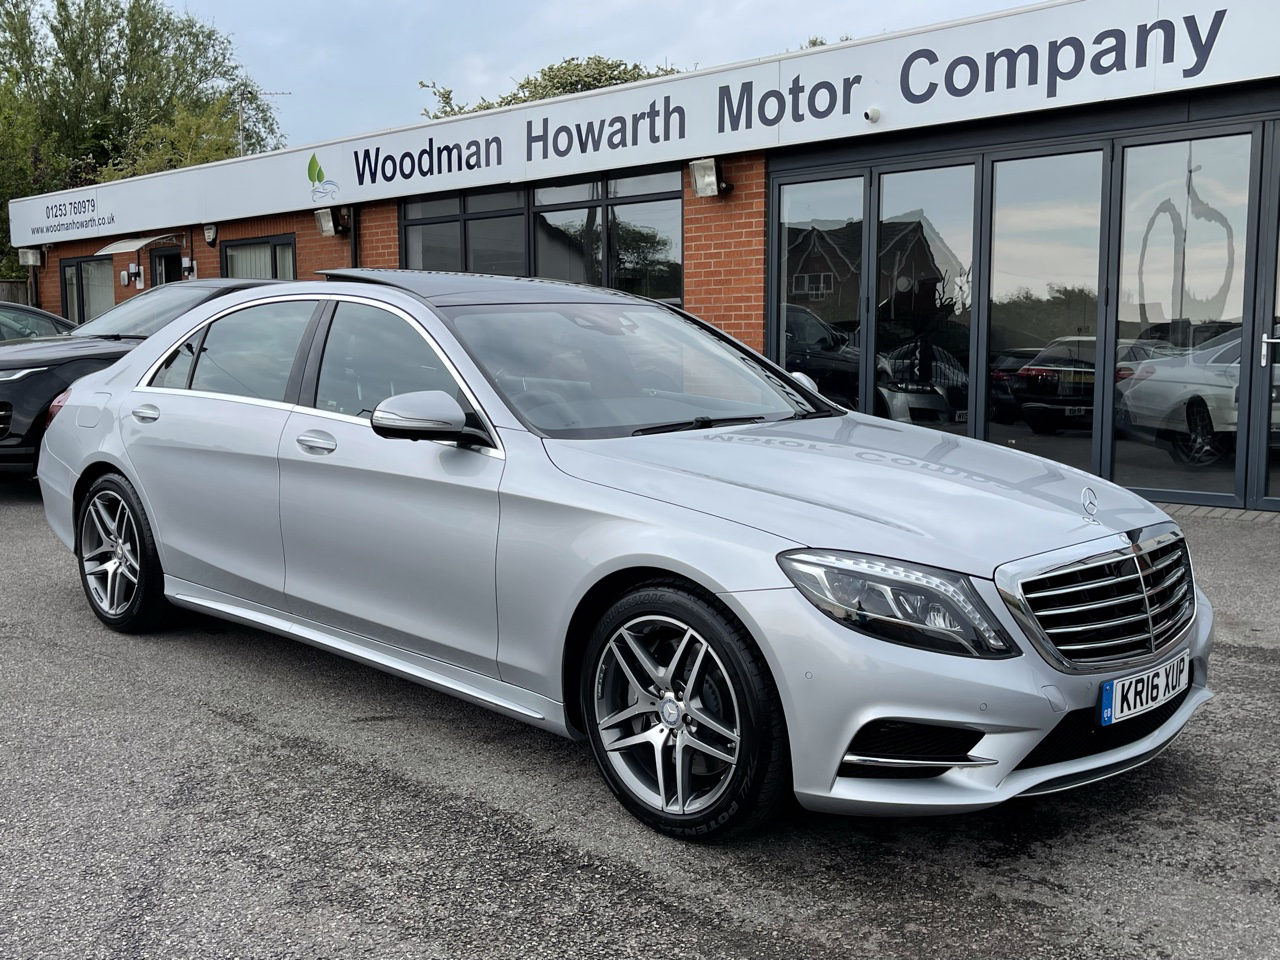 2016 16 MERCEDES BENZ S350D L AMG LINE 9G-TRONIC AUTO - Panoramic Roof - 360 Cameras - Memory Package - Only 2400 miles - VAT Q